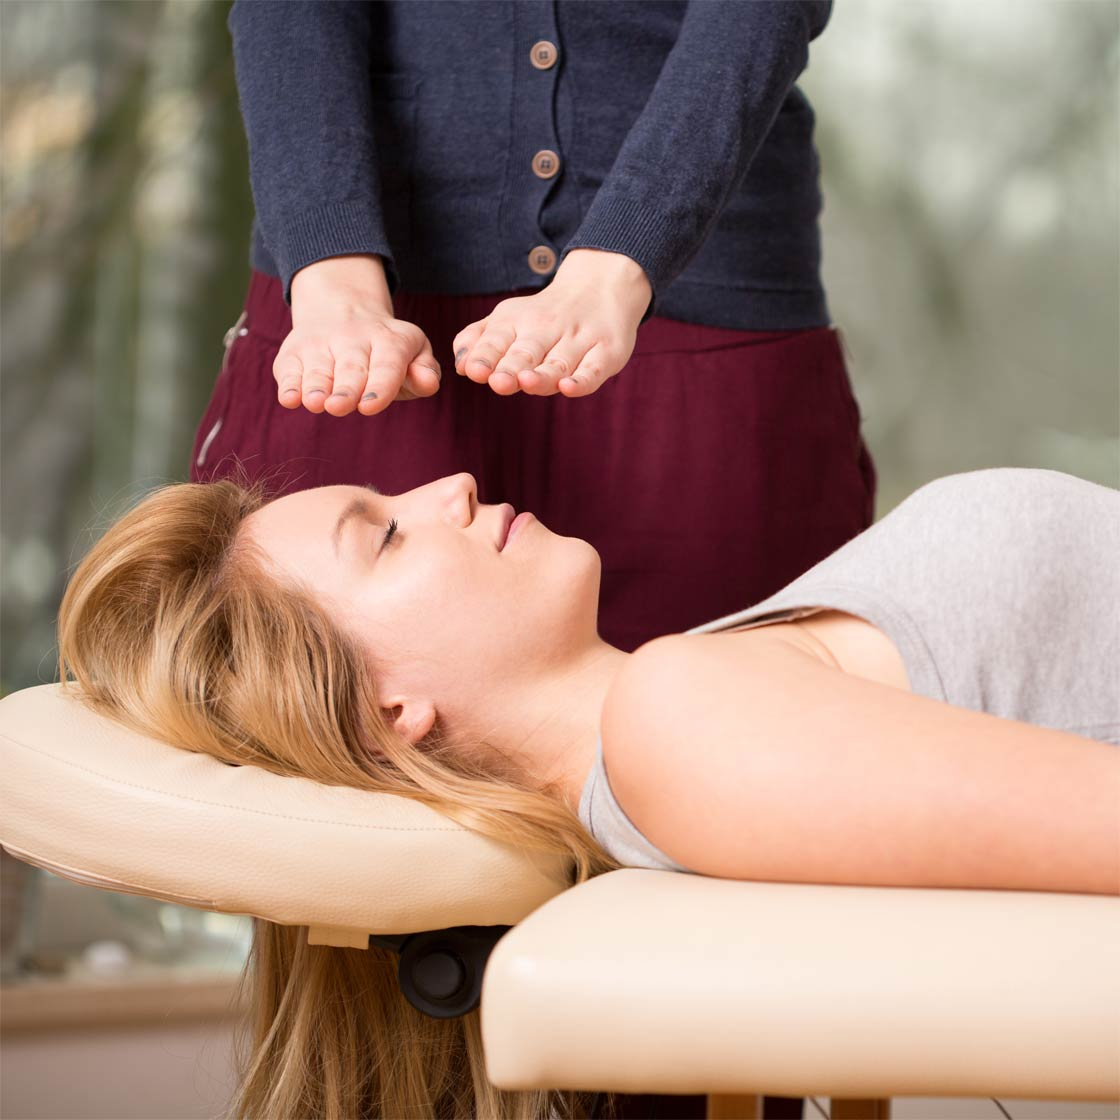 Young woman receiving hands-off Reiki treatment